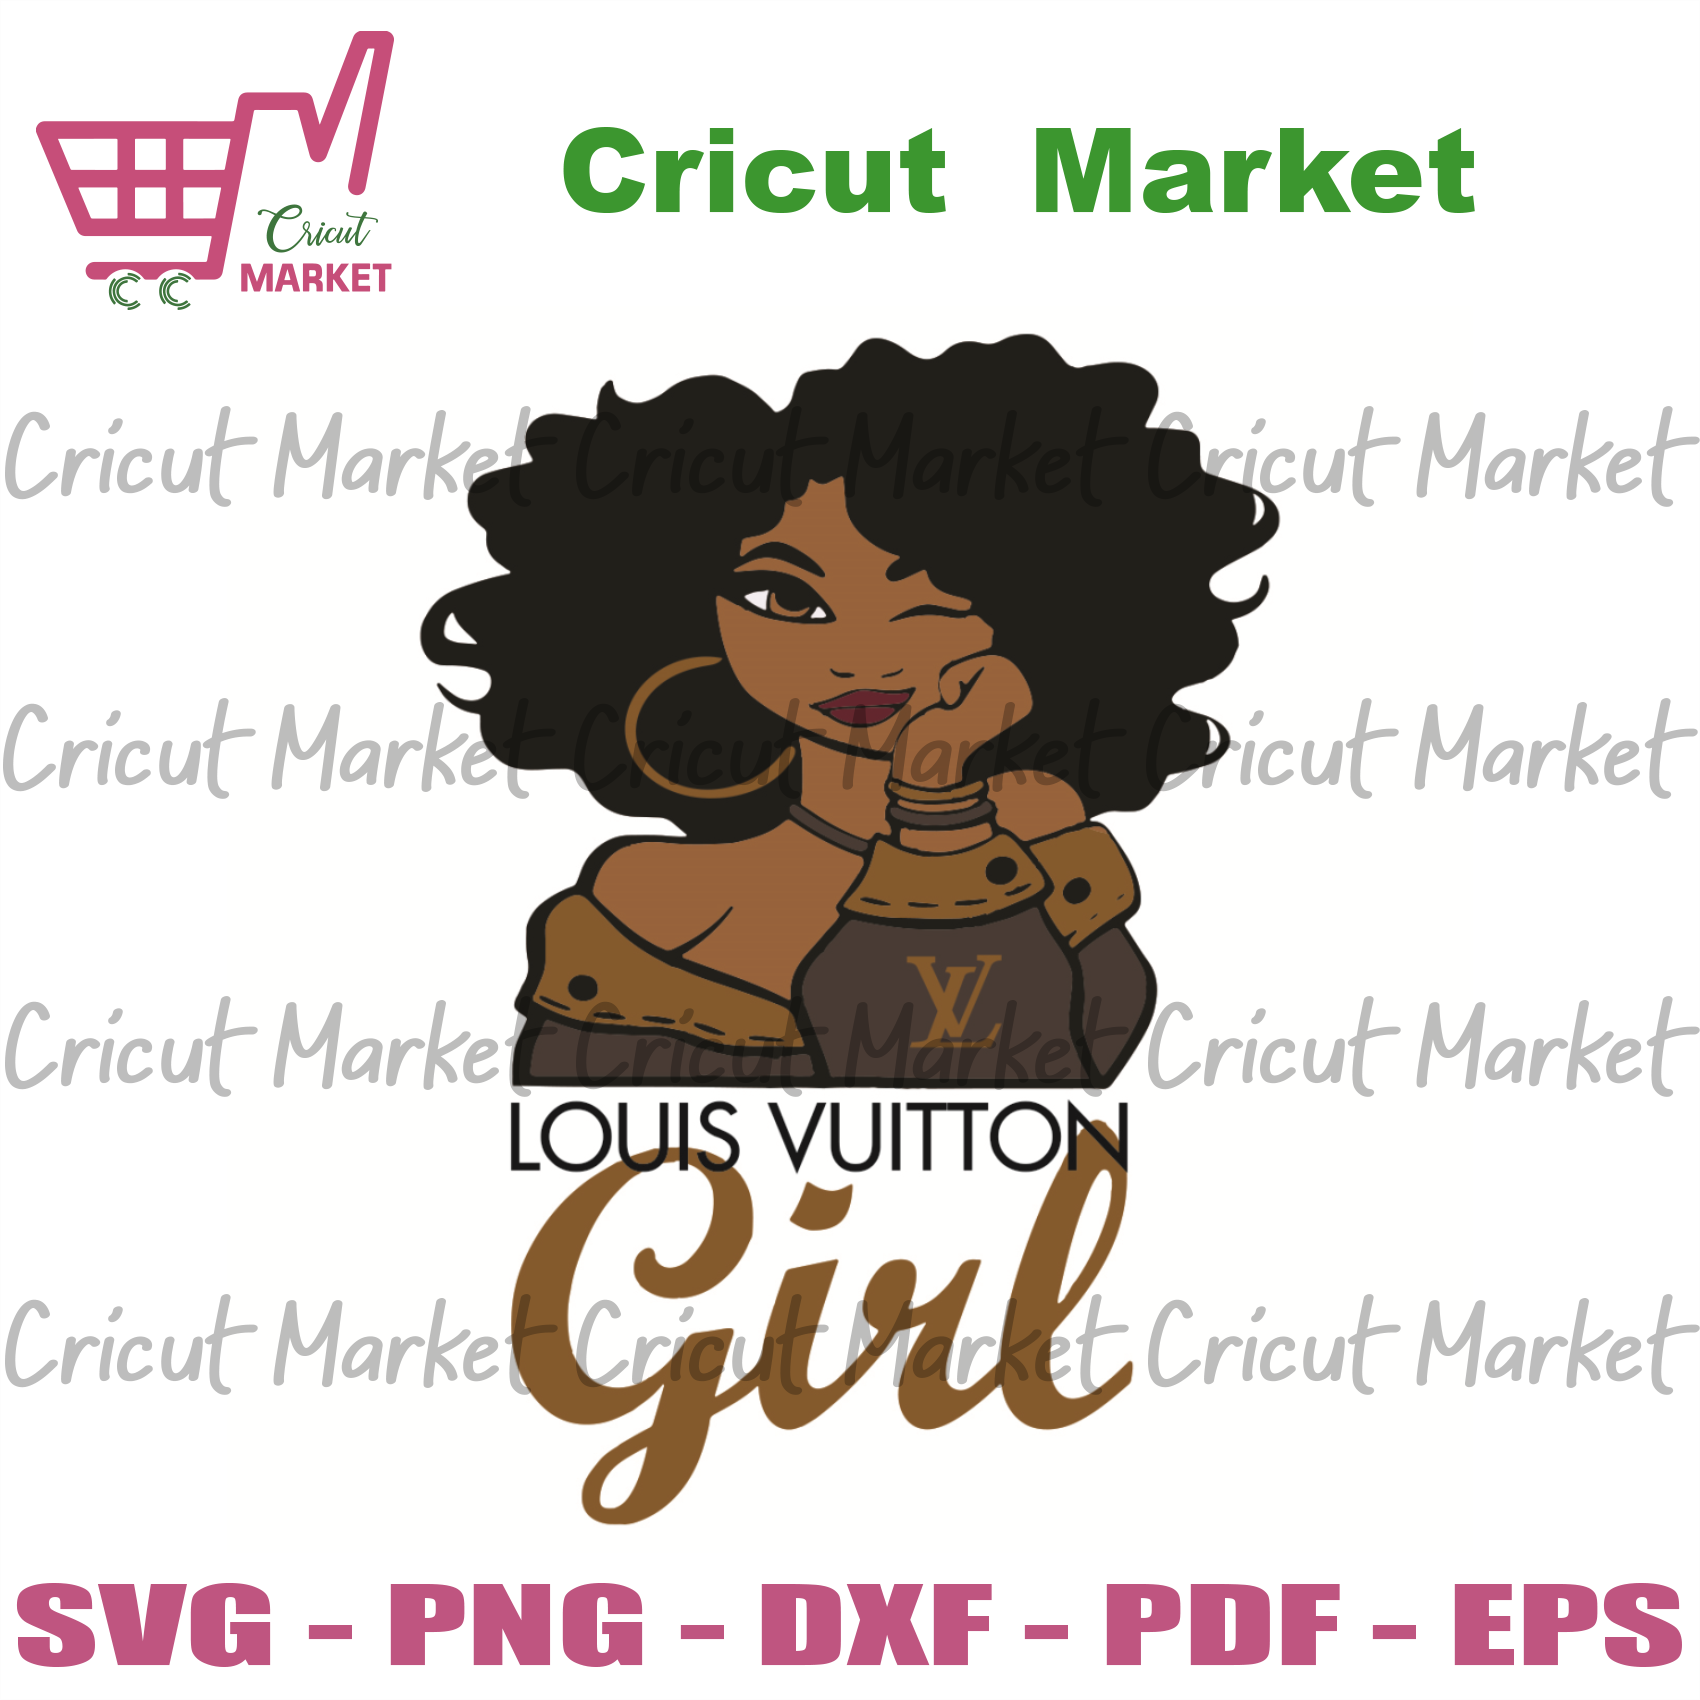 Louis Vuitton Girl Svg, Trending Svg, Louis Vuitton Svg, Louis Vuitton Black Girl Svg, Black Girl Svg, Girl Love Louis Vuitton Svg, Louis Vuitton Logo Svg, Louis Vuittonpattern Svg, Girl Gift